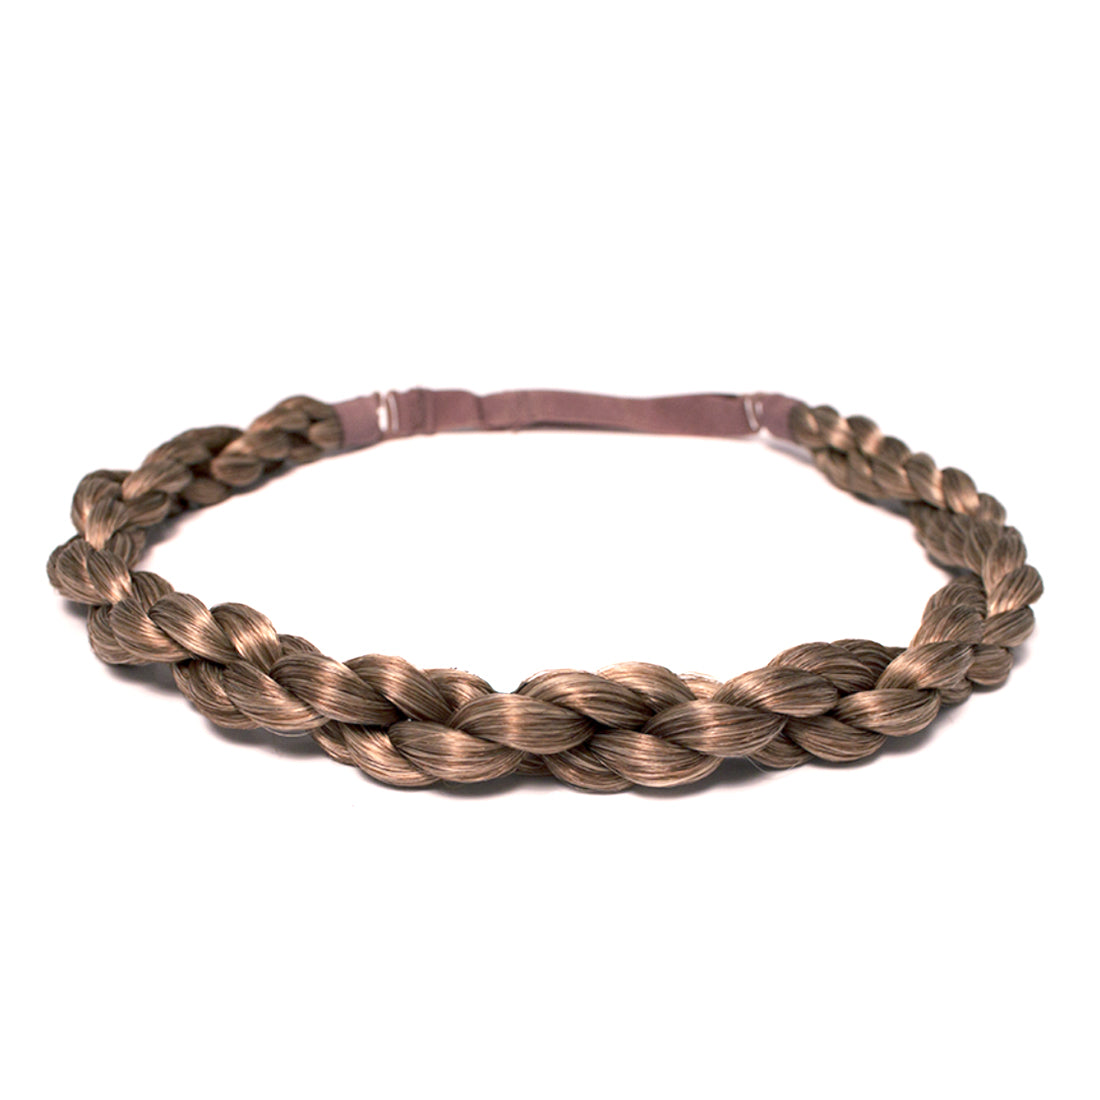 Mia® Rope Braidie is a 3/4 inch wide braided headband made out of synthetic wig hair